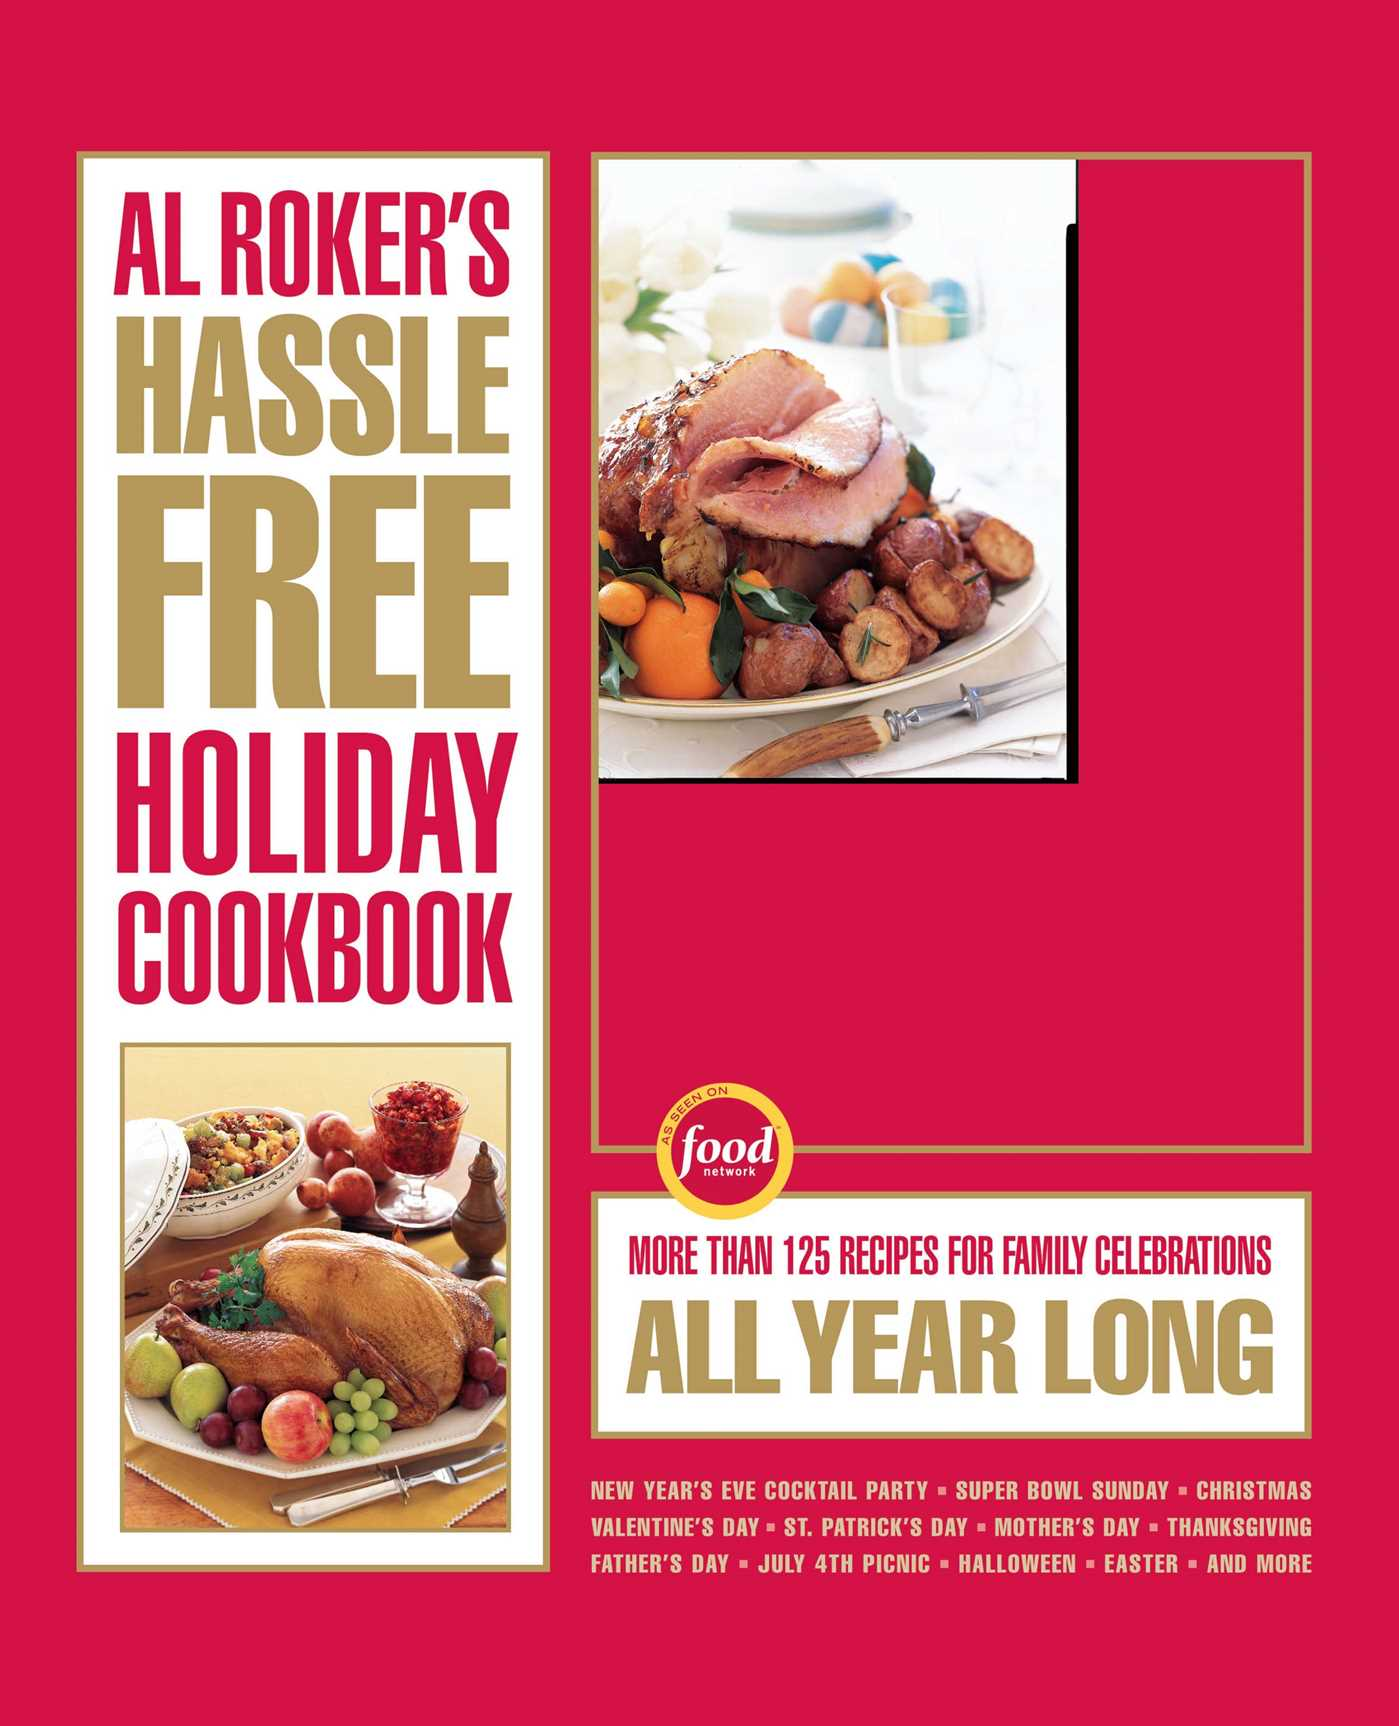 Al rokers hassle free holiday cookbook 9781416569589 hr